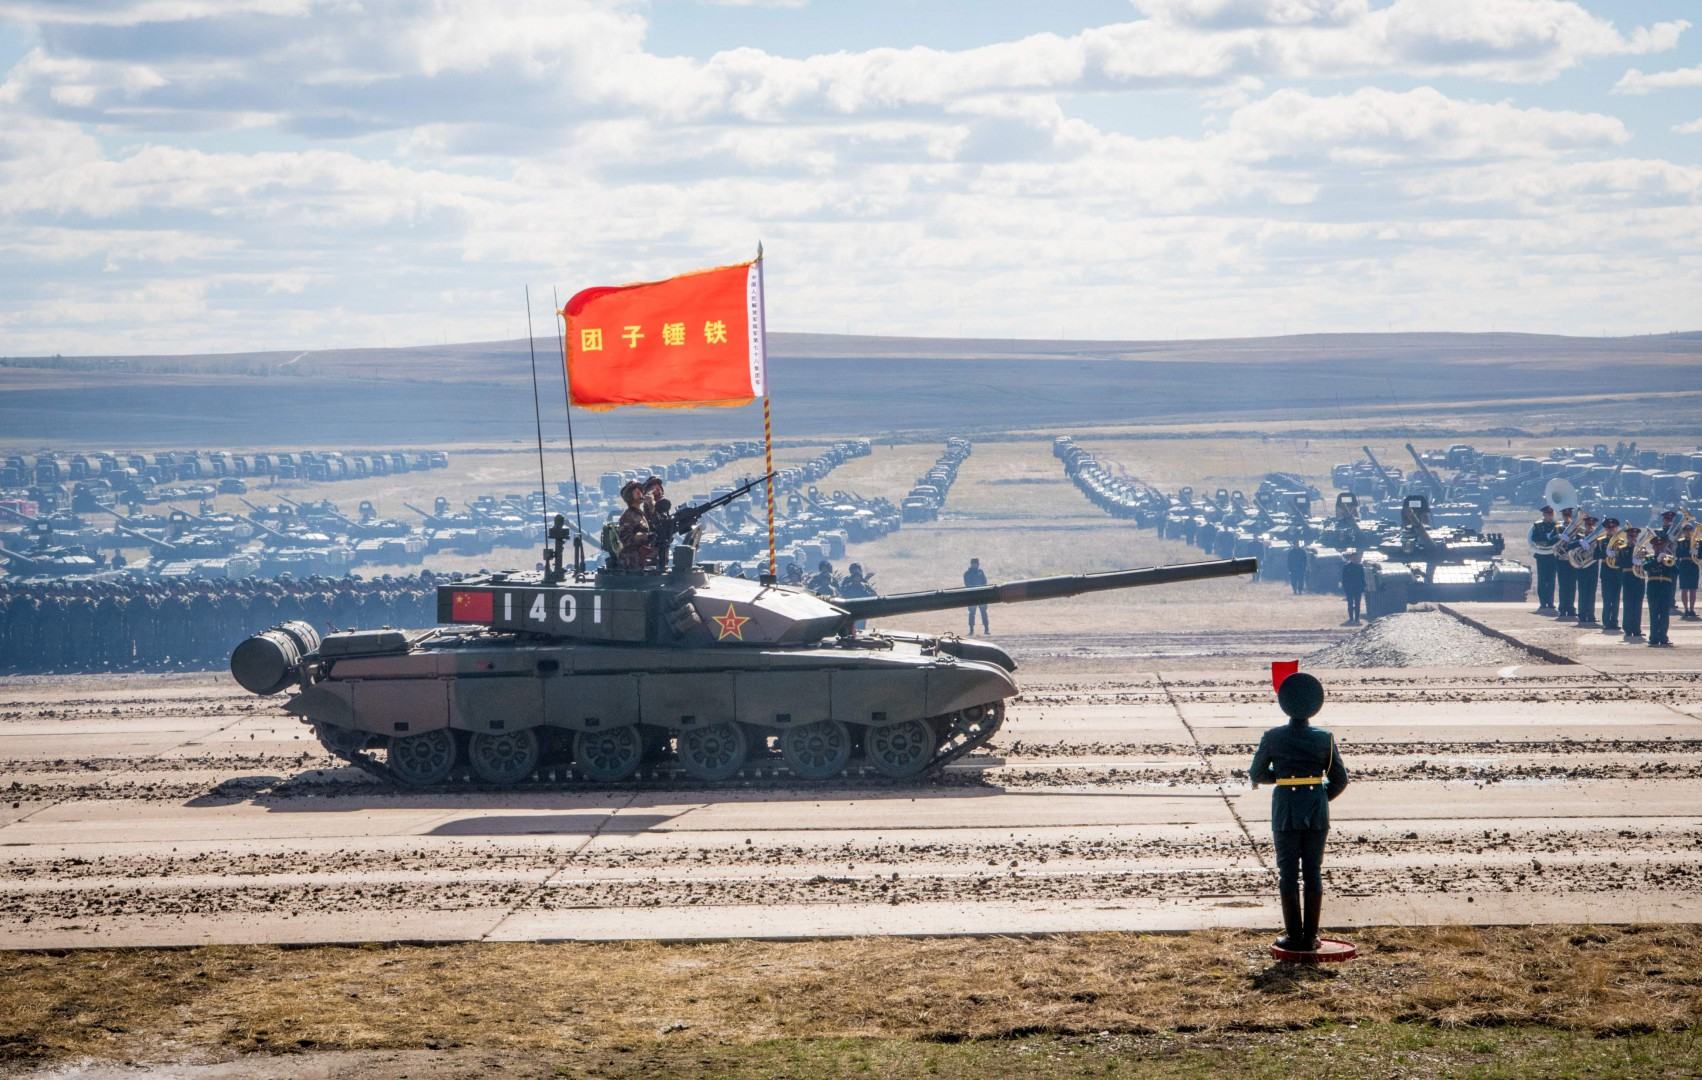 TOPSHOT - Russian, Chinese and Mongolian troops and military equipment parade at the end of the day of the Vostok-2018 (East-2018) military drills at Tsugol training ground not far from the Chinese and Mongolian border in Siberia, on September 13, 2018. (Photo by MLADEN ANTONOV / AFP)